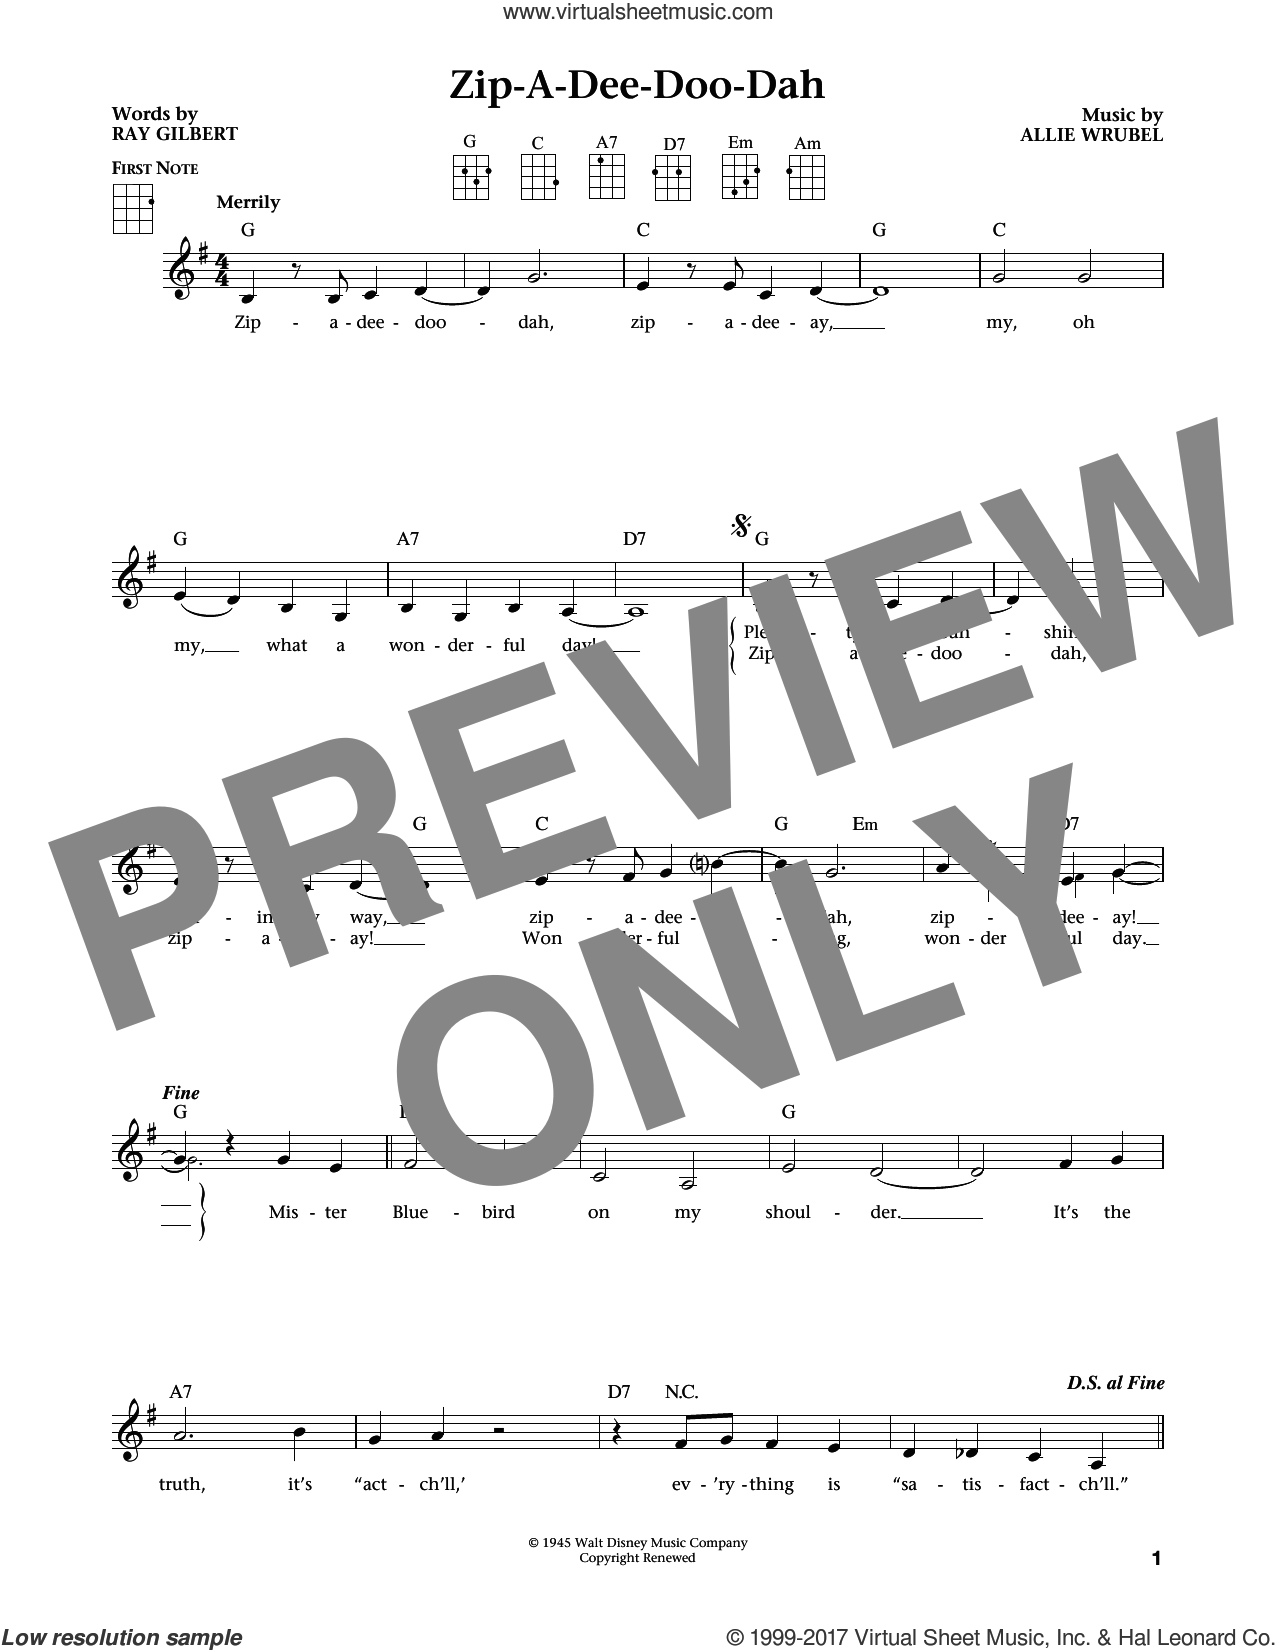 Zip-A-Dee-Doo-Dah (from The Daily Ukulele) (arr. Liz and Jim Beloff) sheet music for ukulele by Ray Gilbert, Jim Beloff, Liz Beloff and Allie Wrubel, intermediate skill level